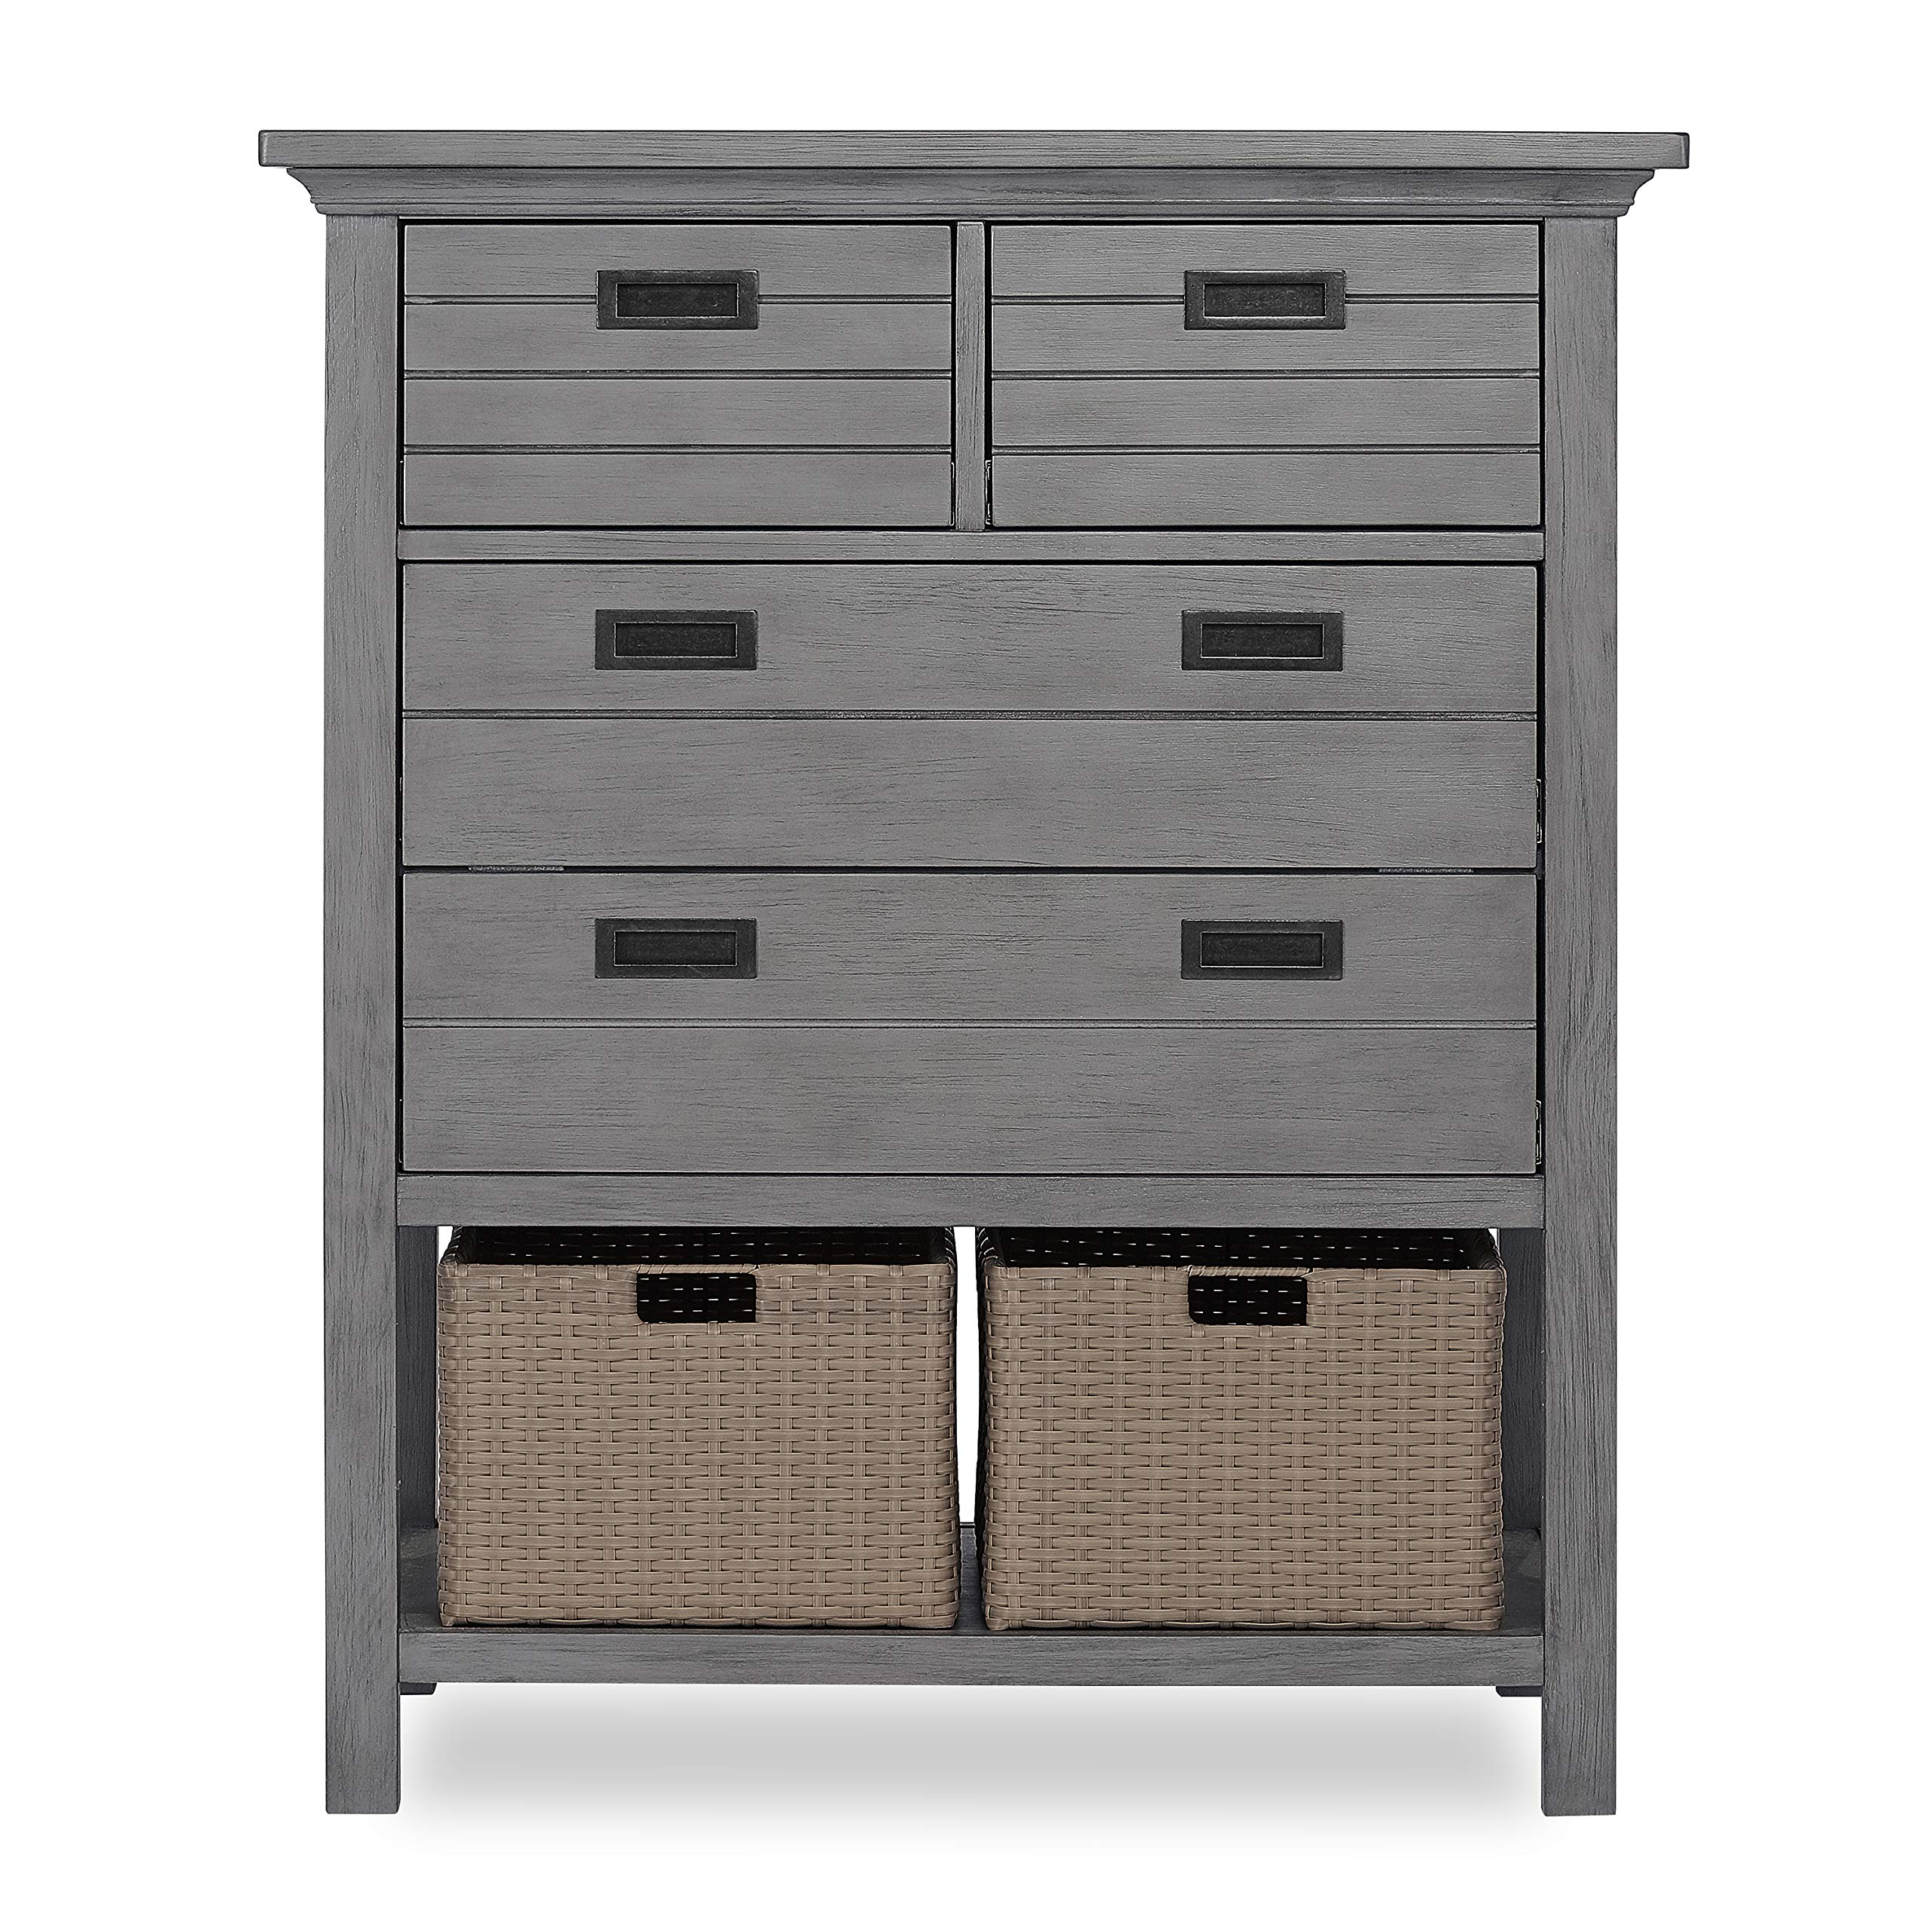 Evolur Waverly Tall Chest with Baskets, Rustic Grey by Evolur